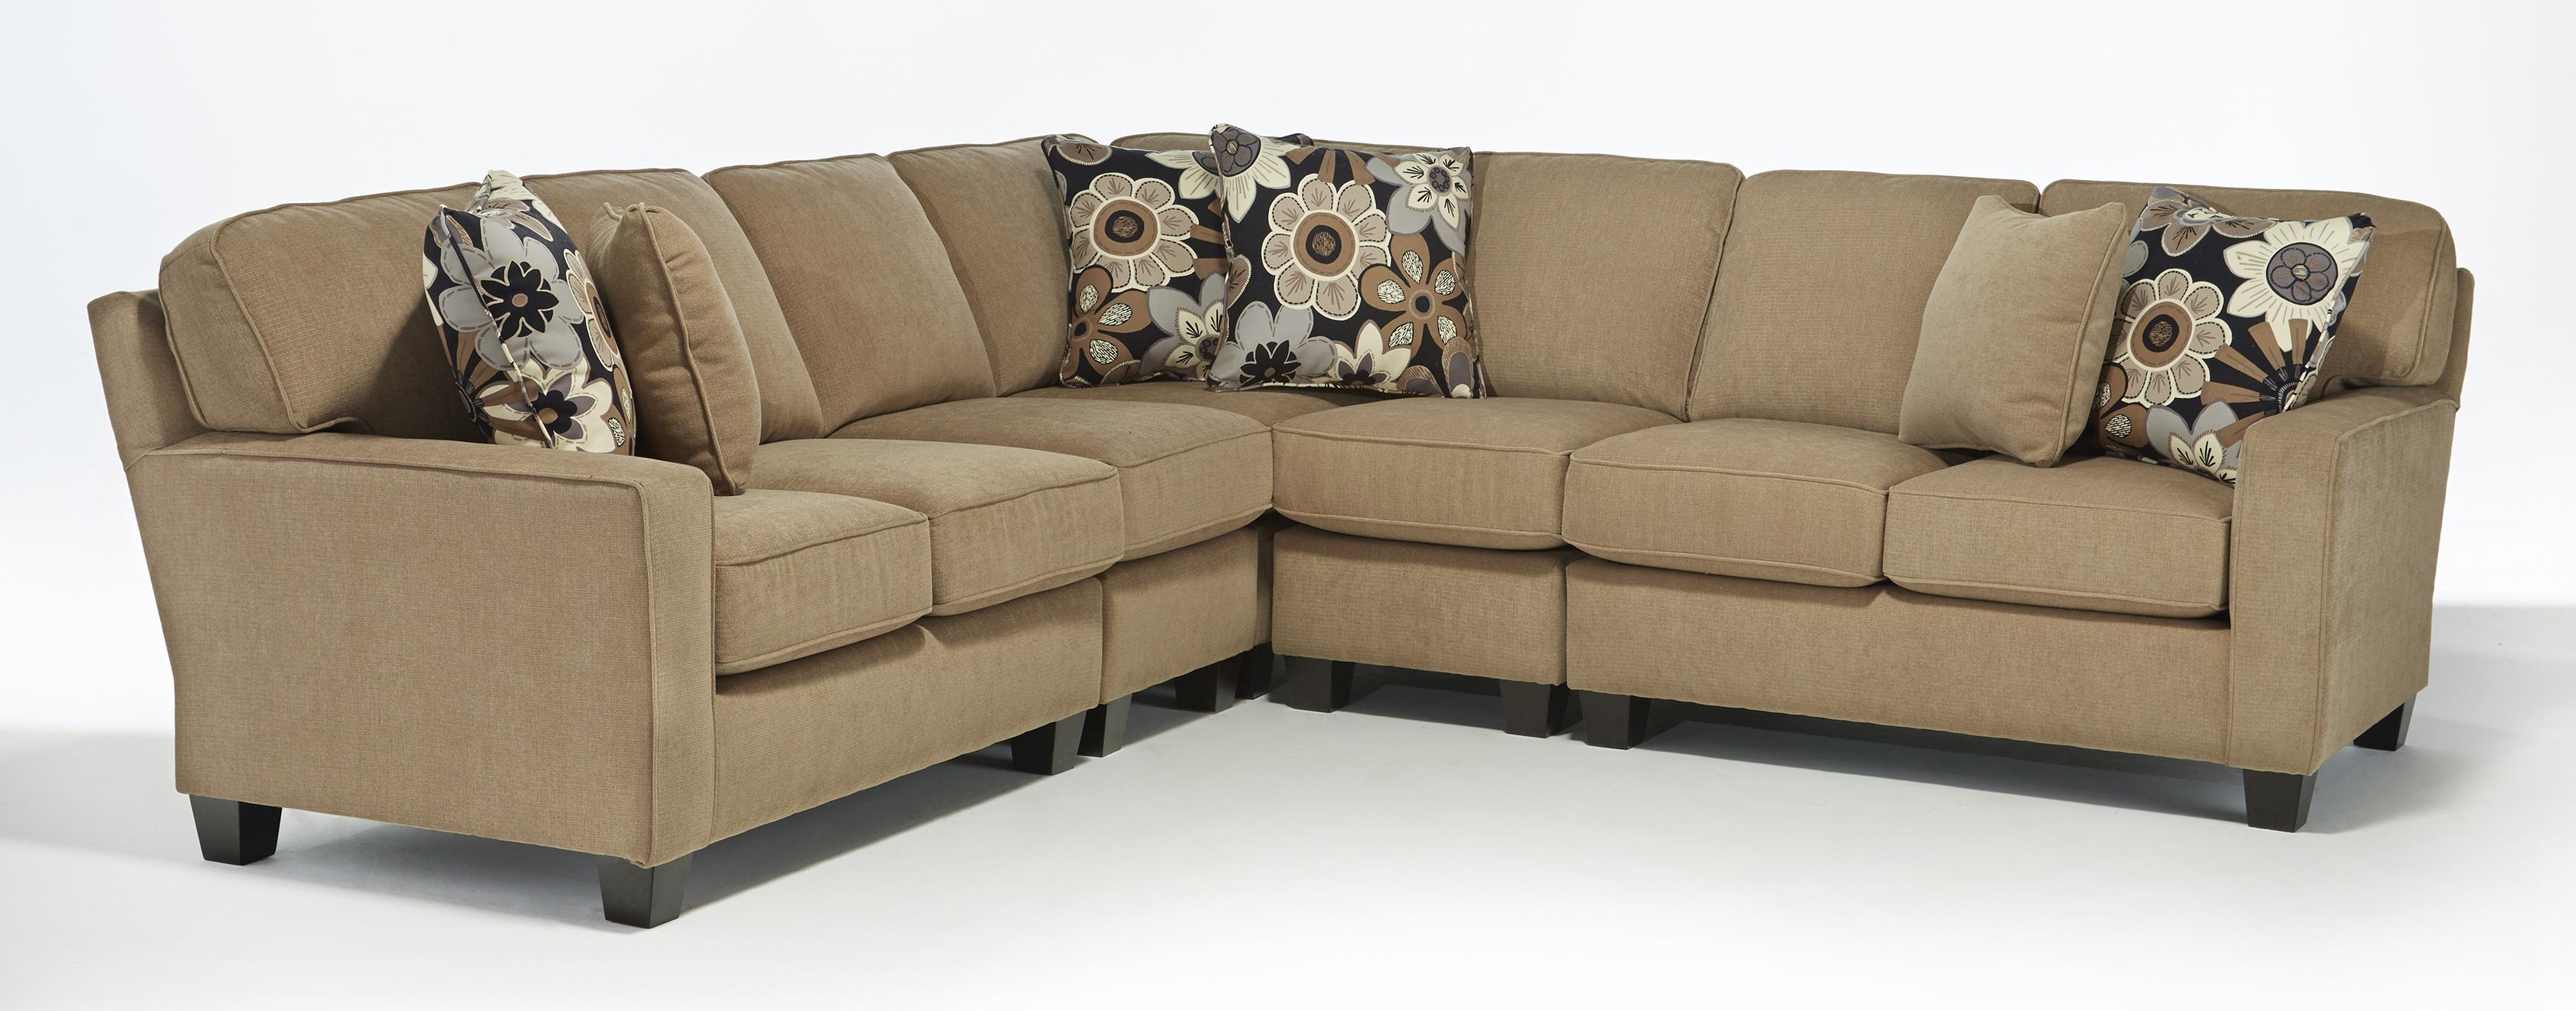 Annabel  5 Pc Sectional Sofa by Best Home Furnishings at Simply Home by Lindy's